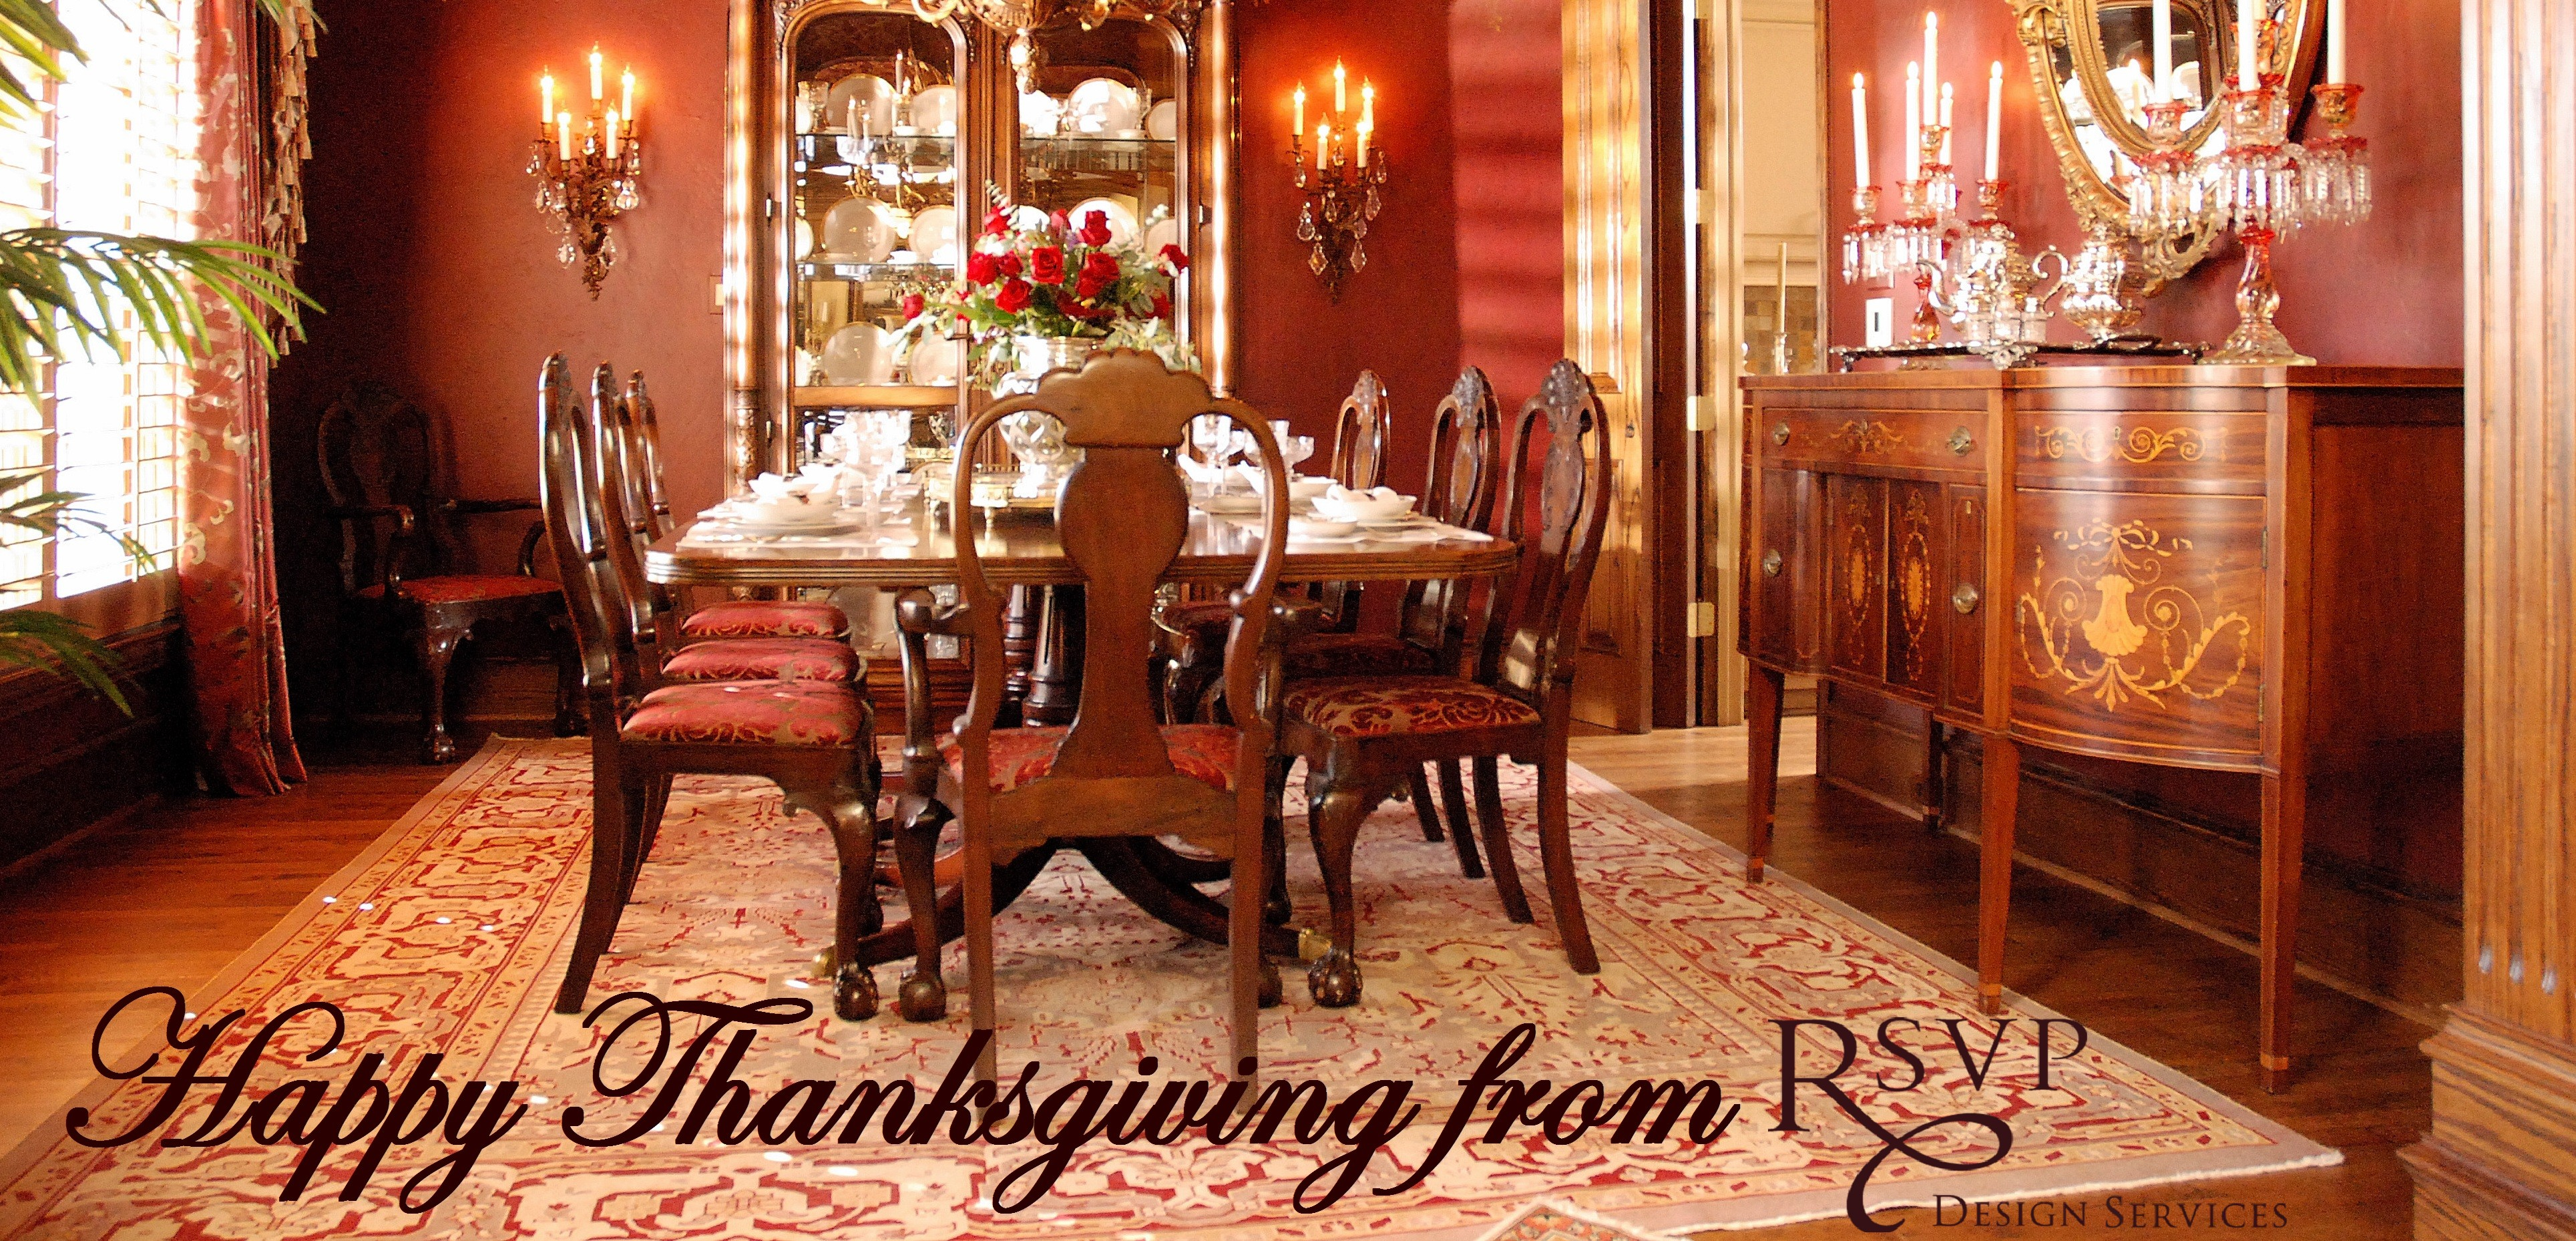 happy thanksgiving from rsvp design services rsvp design services